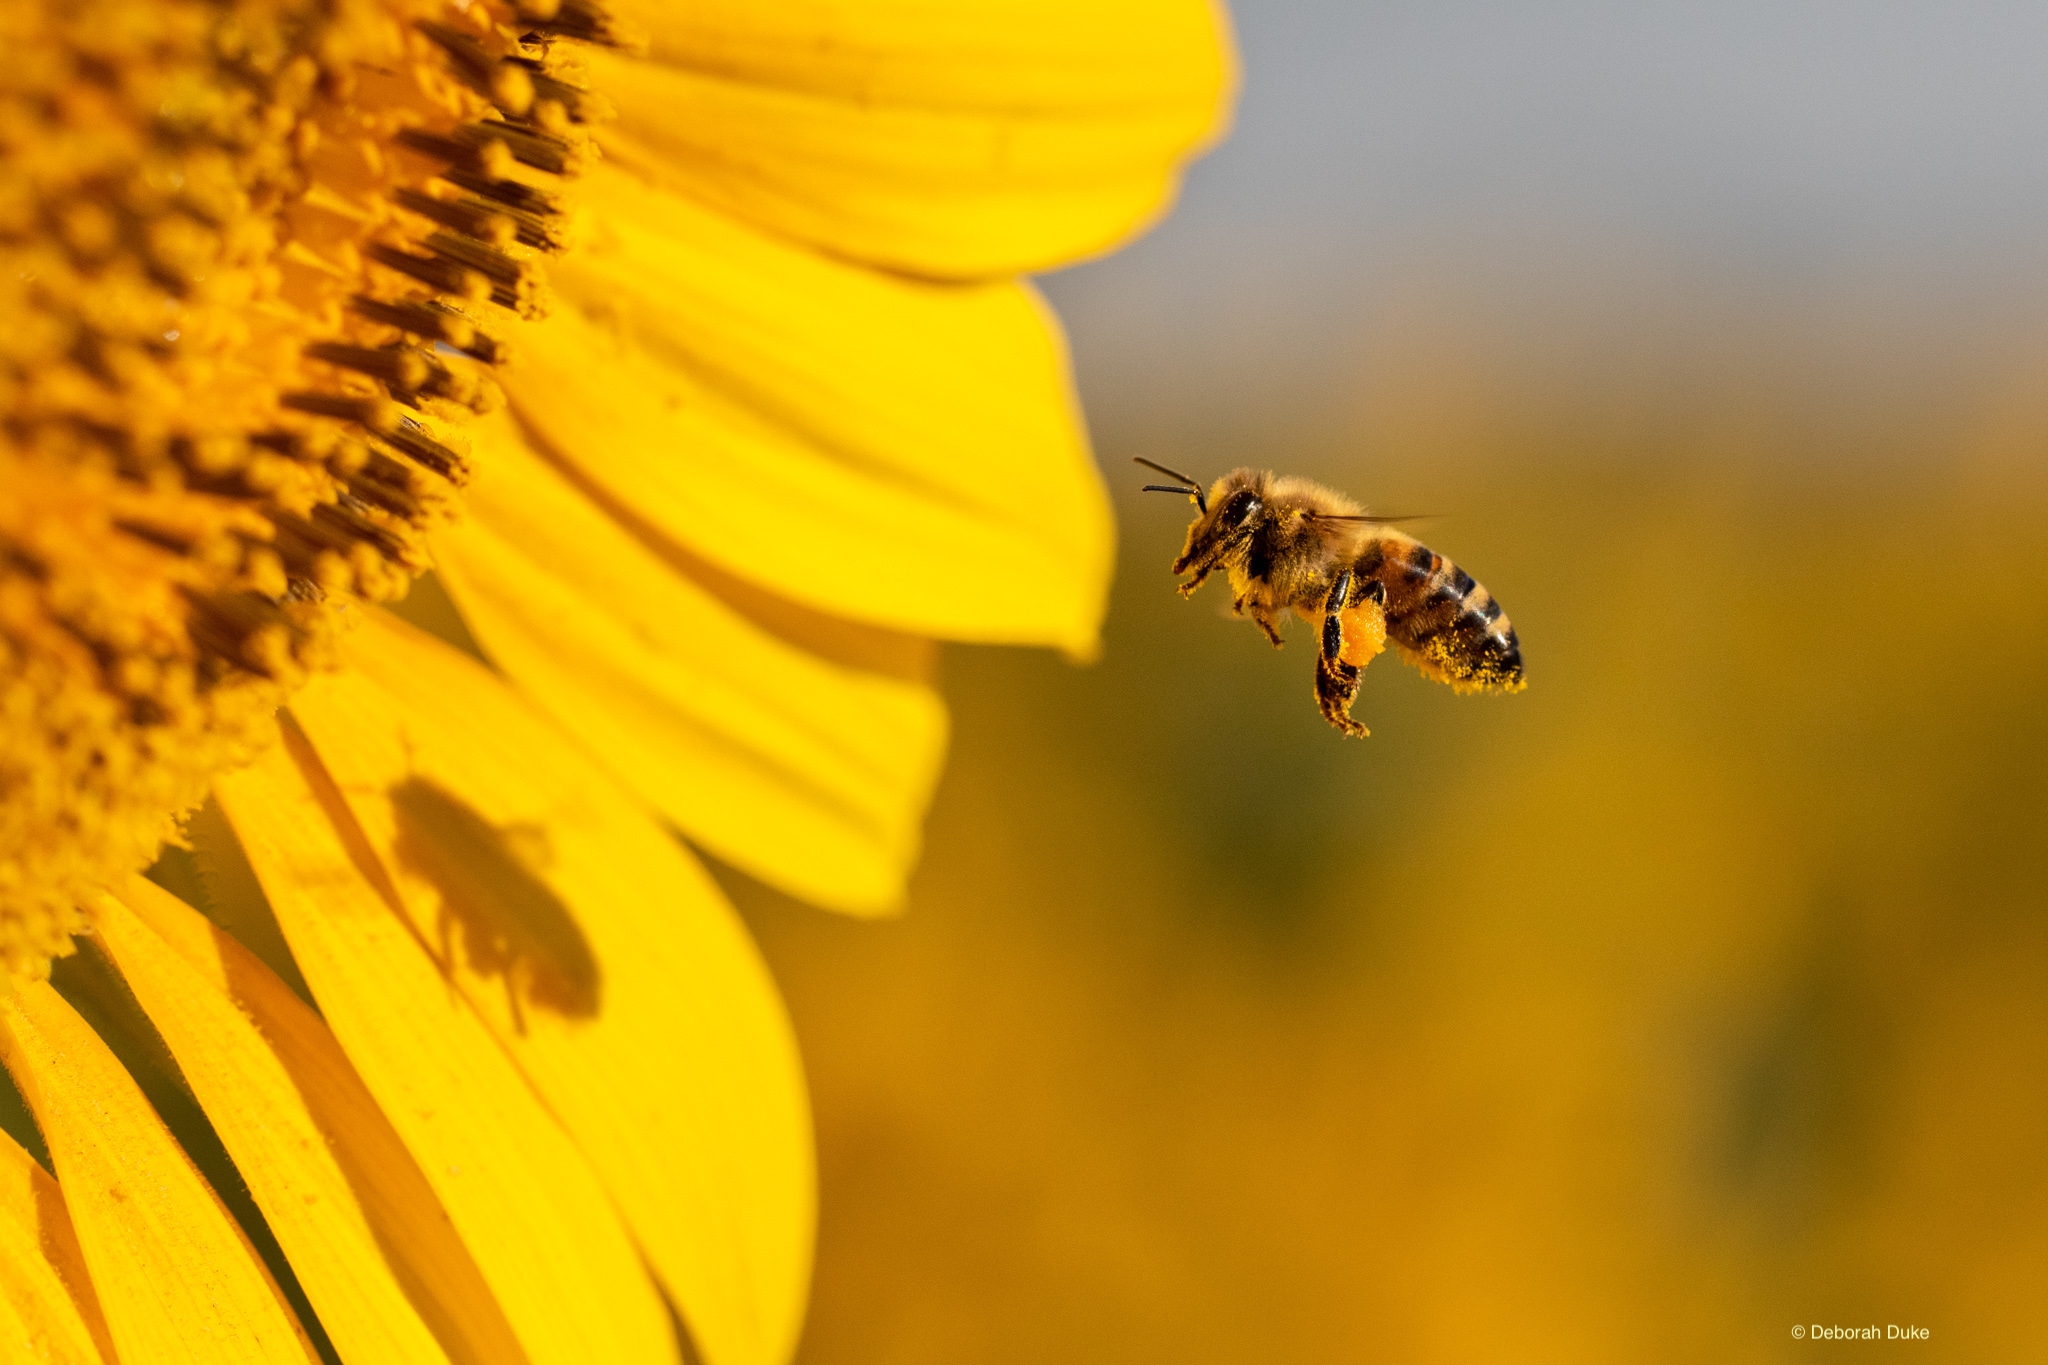 Honey bee approaching a sunflower, image by Deborah Duke